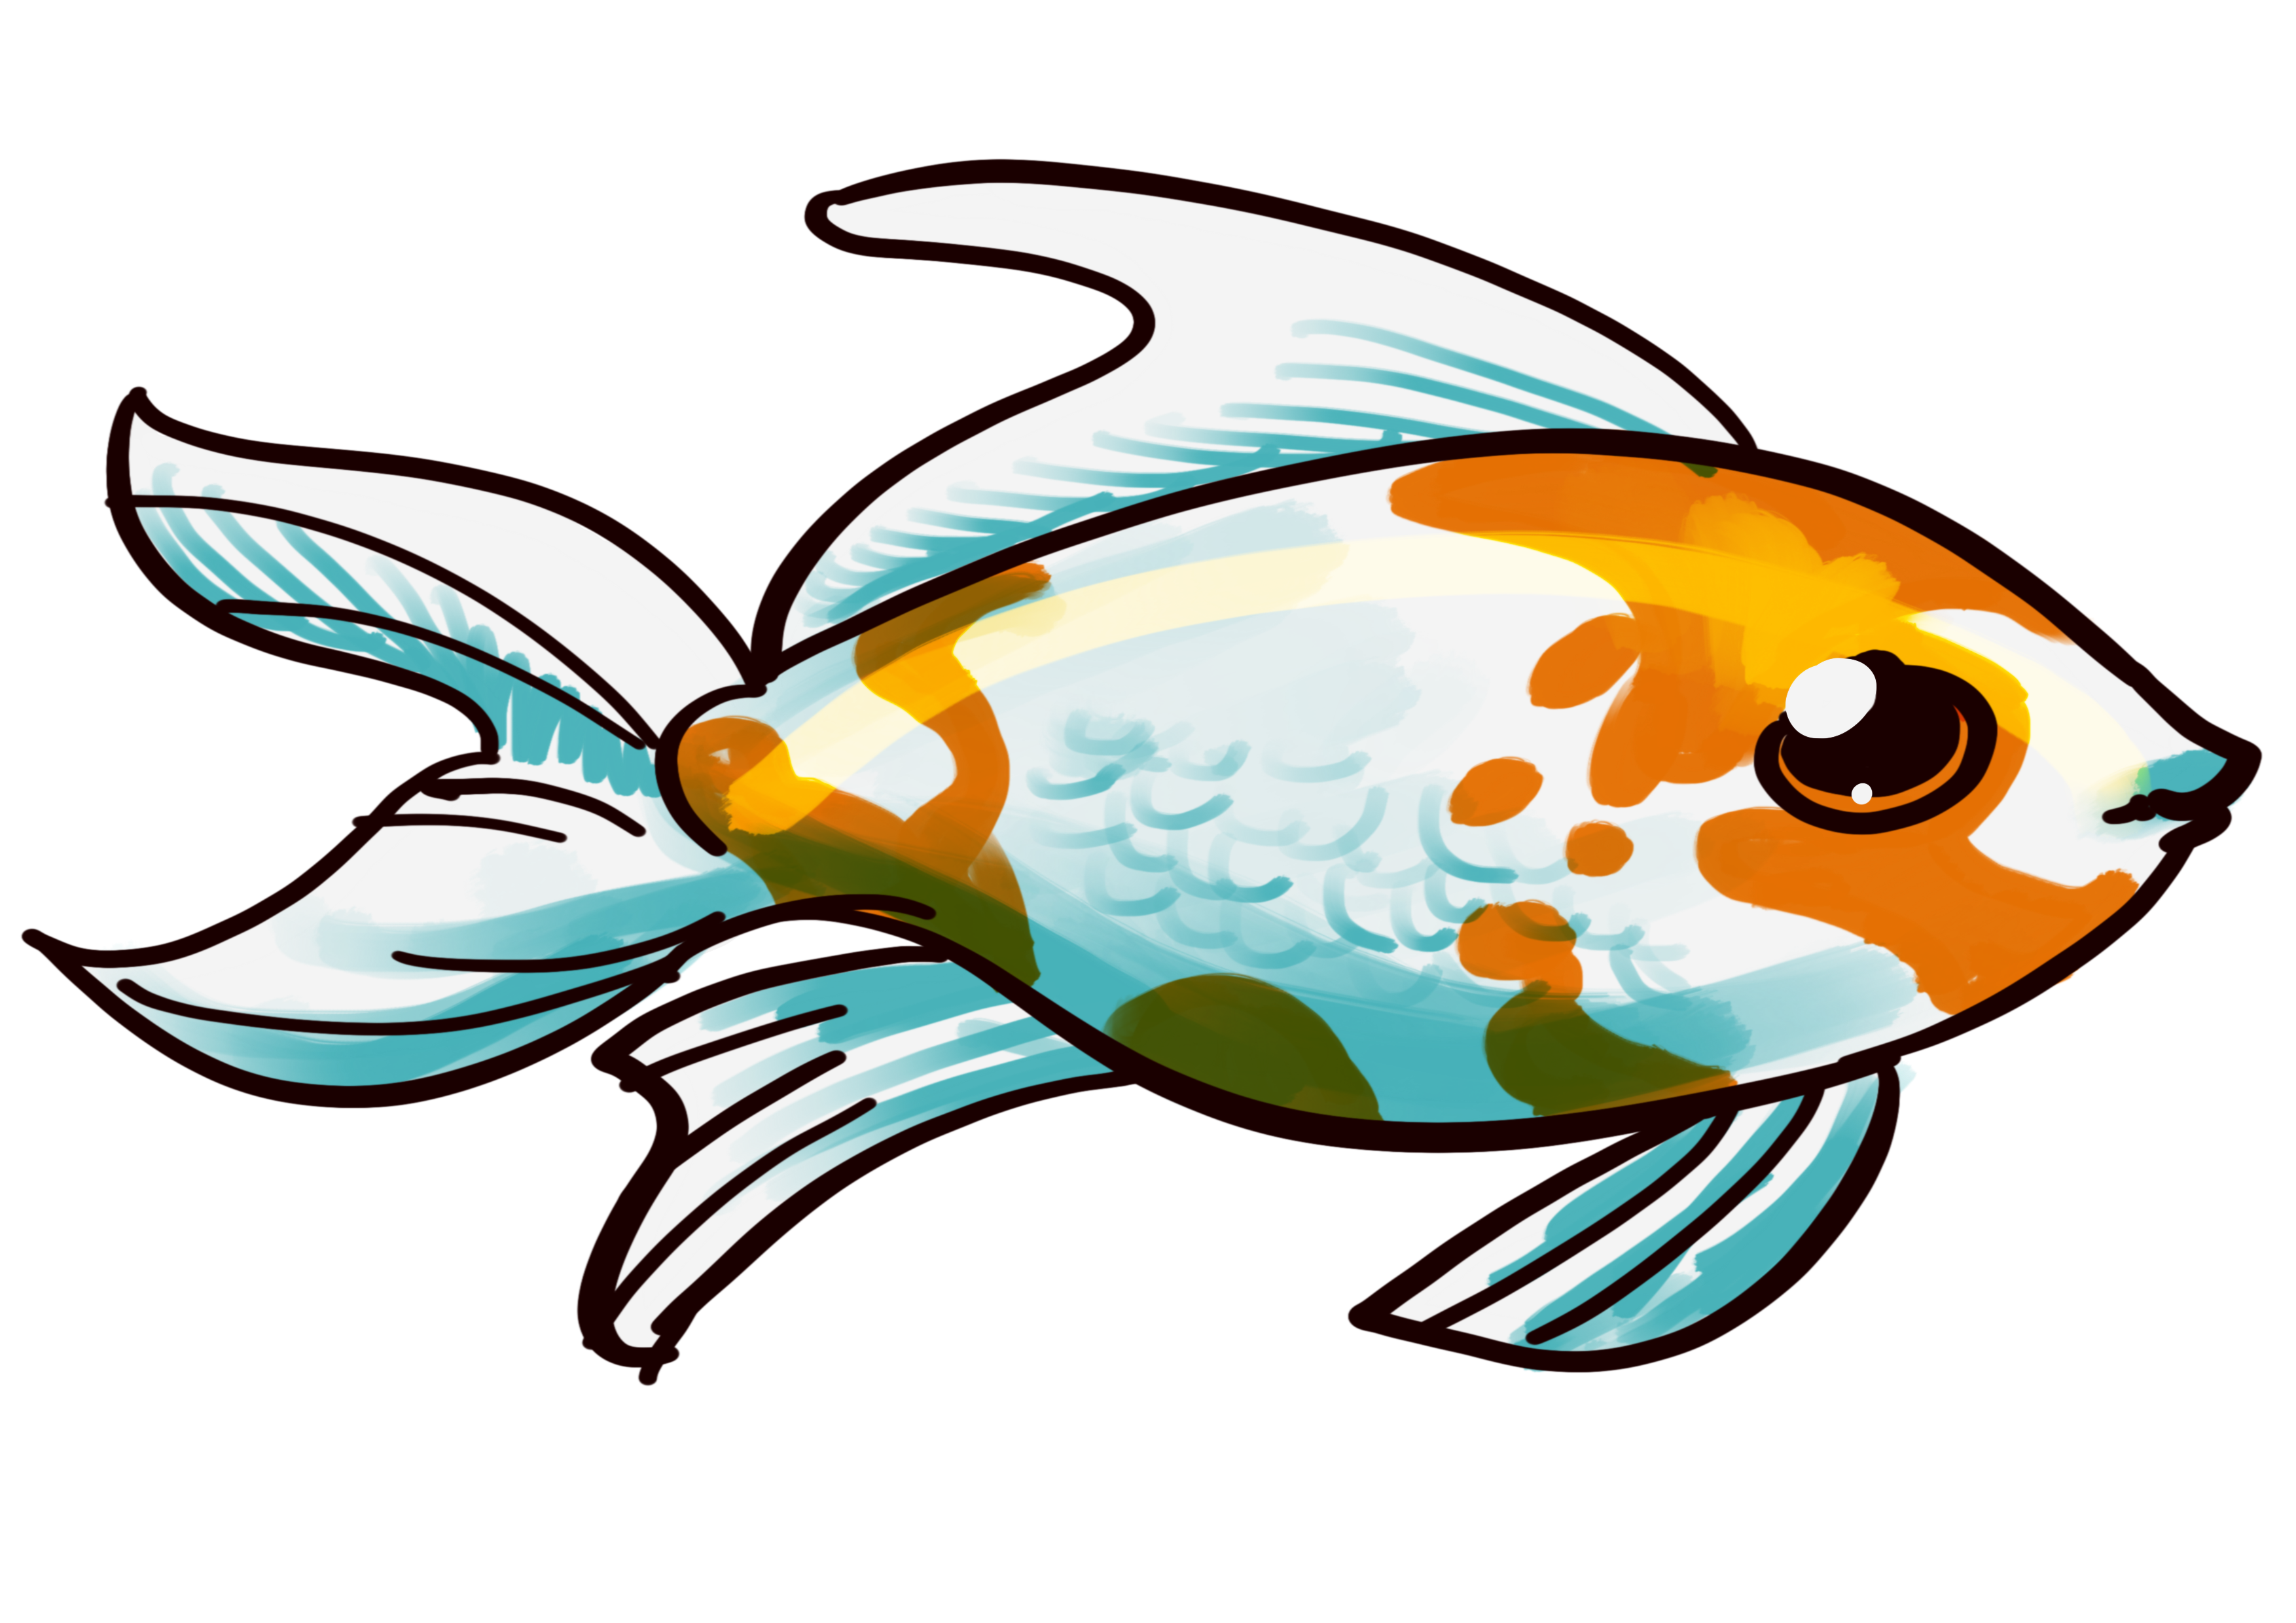 Fish feeder clipart png black and white library Comet Goldfish - Comet Goldfish Care and info png black and white library